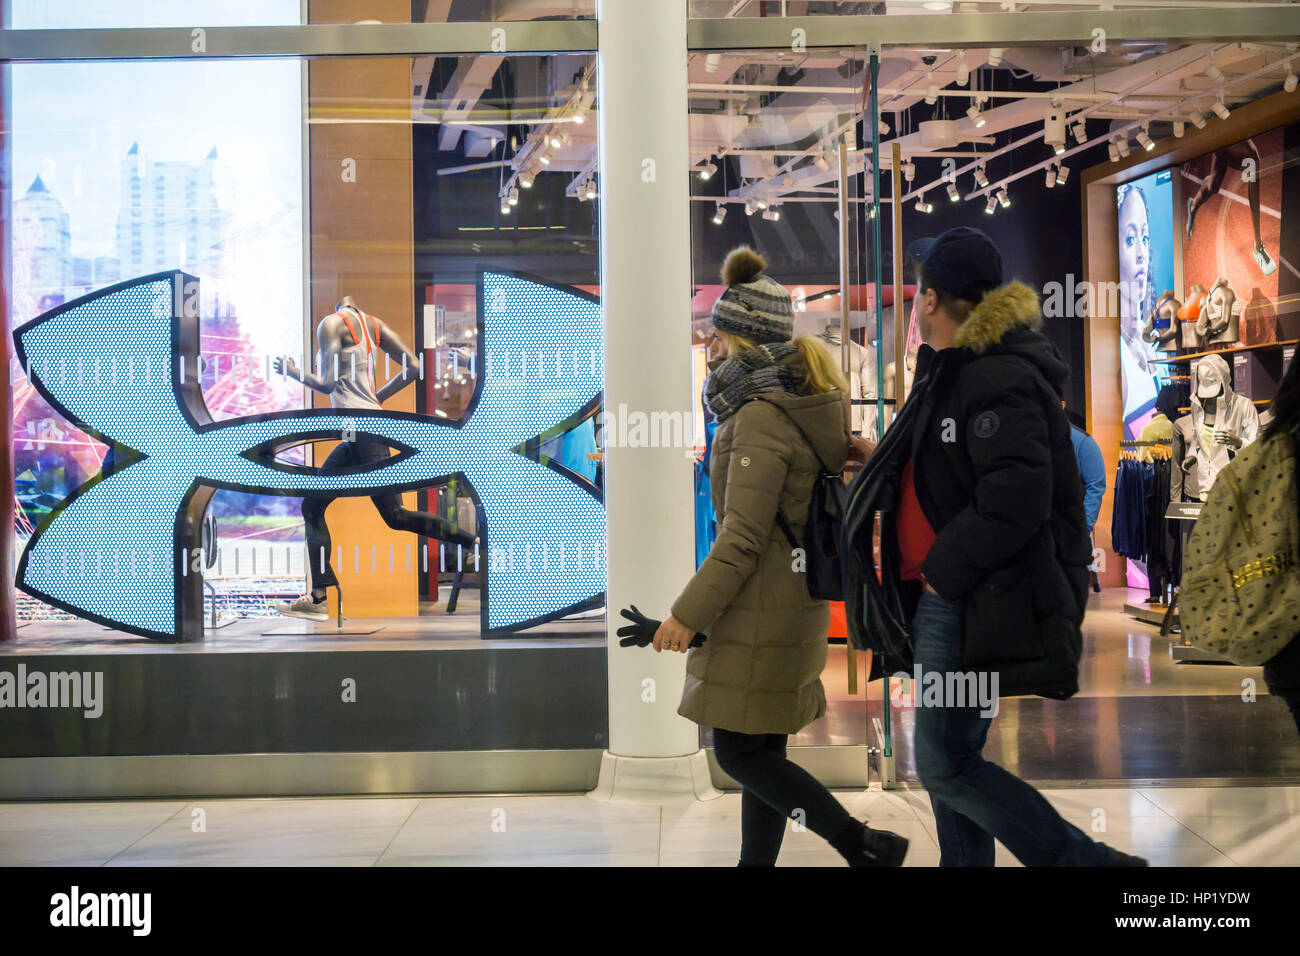 The Under Armour store in the Westfield World Trade Center Oculus mall in New York on Saturday, February 11, 2017. - Stock Image